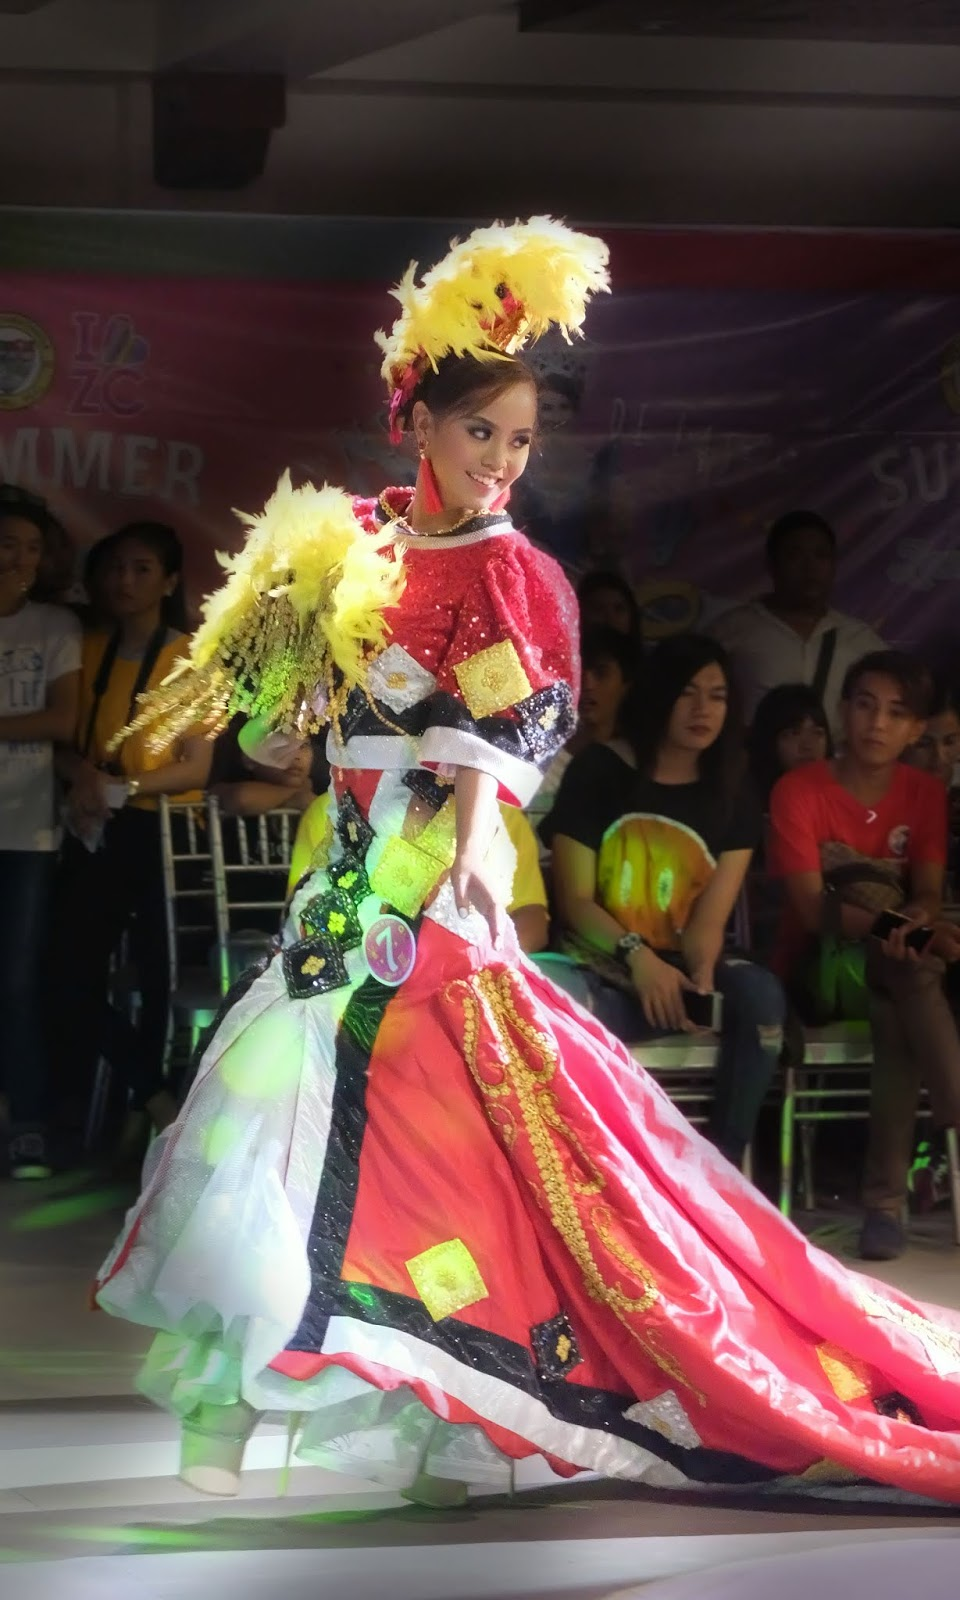 Kaamulan Festival of Malaybalay Bukidnon Manobo Tribe Festival de las Bellas y Flores Gown Competition National Costume